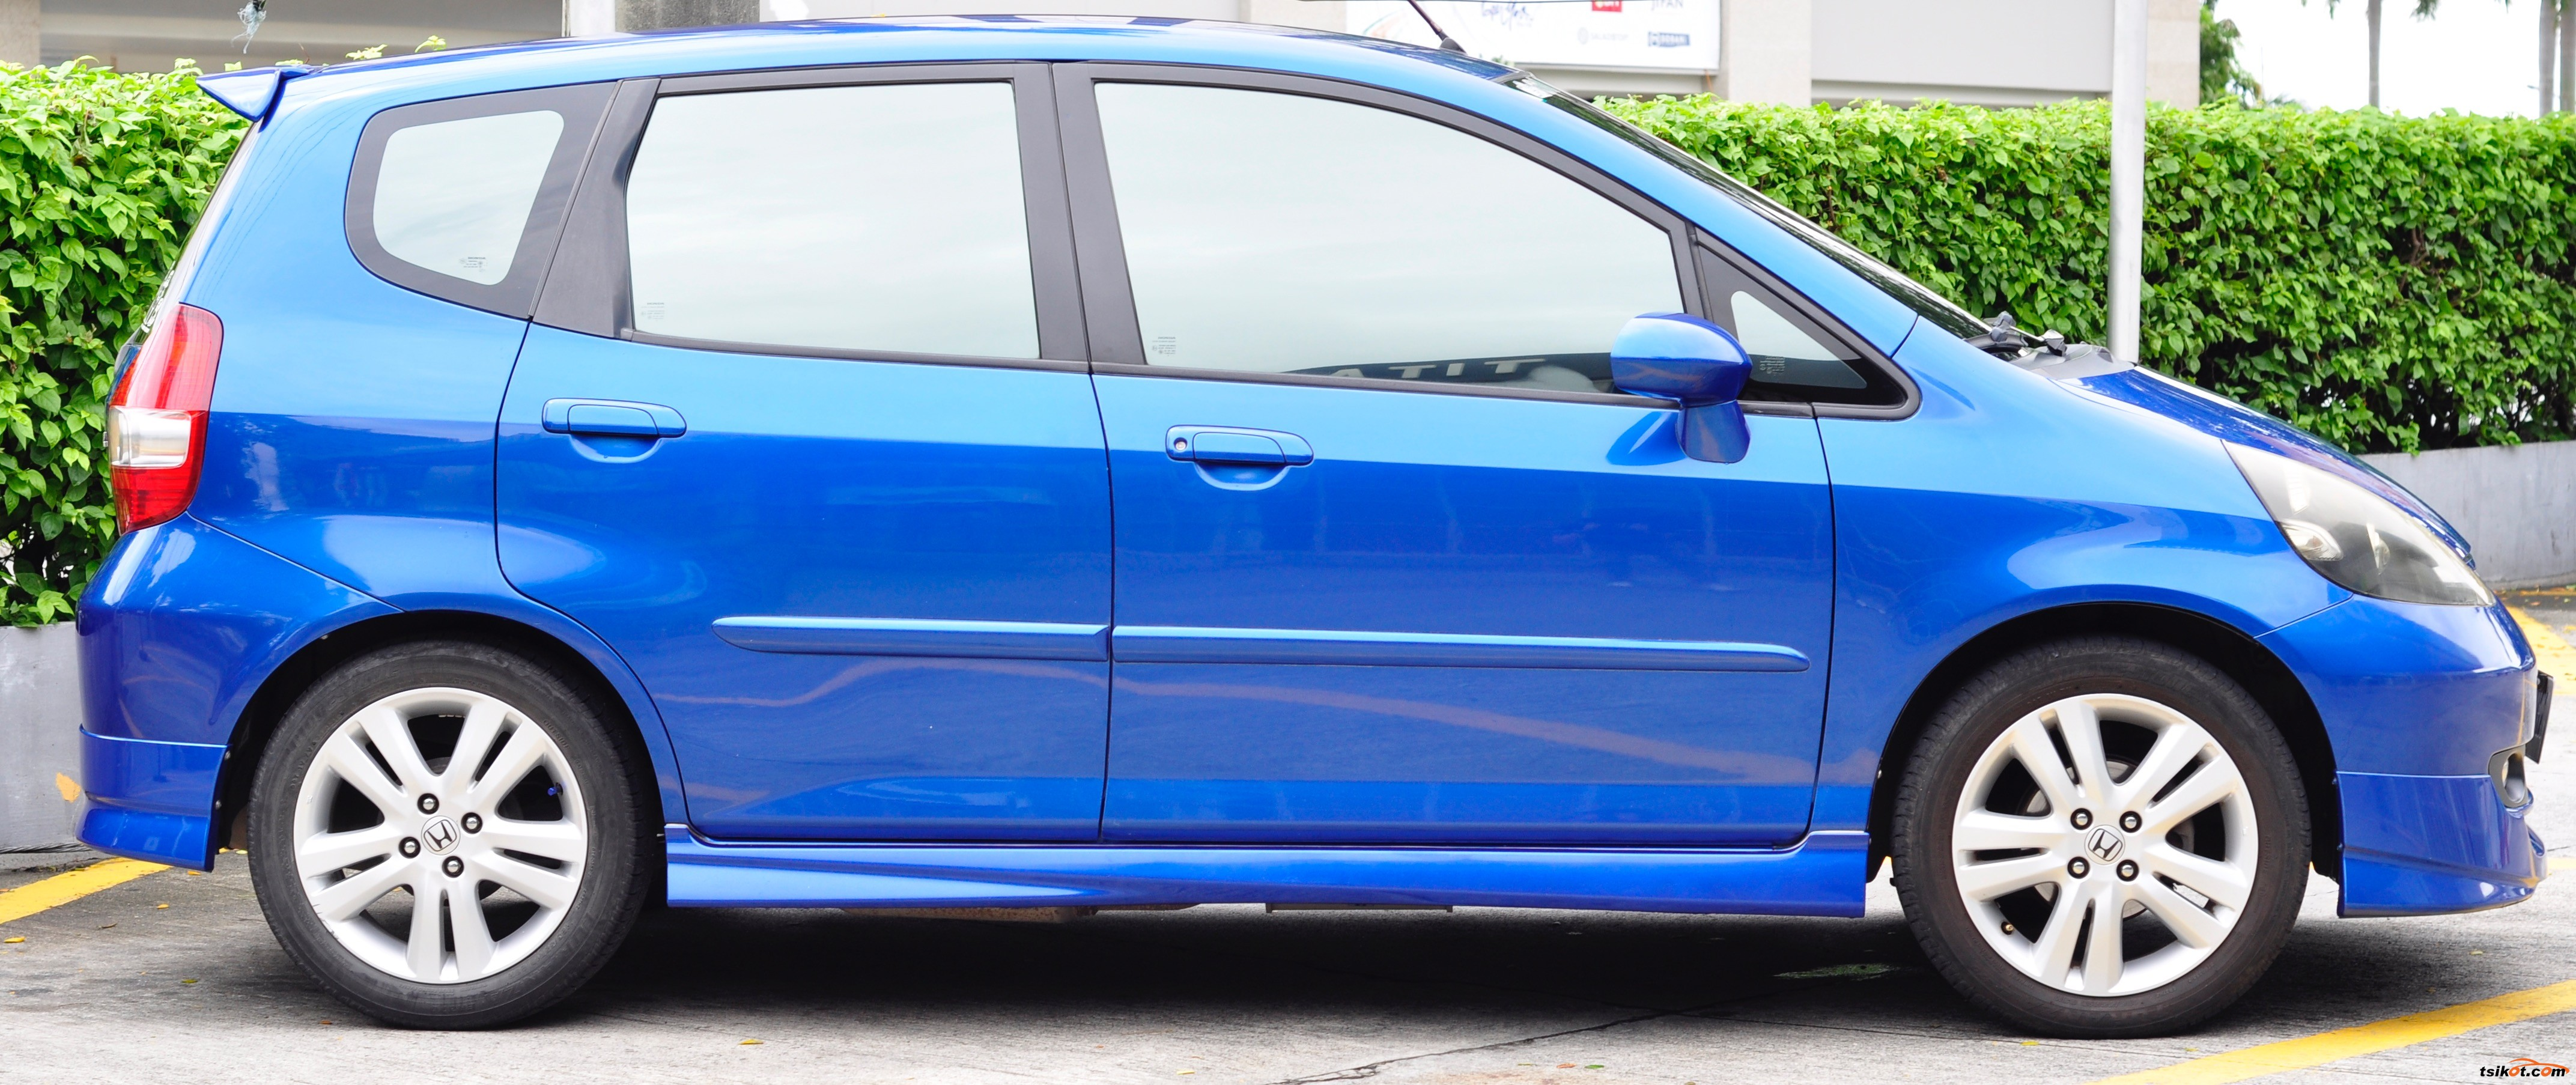 Honda Cars In The Philippines For Sale